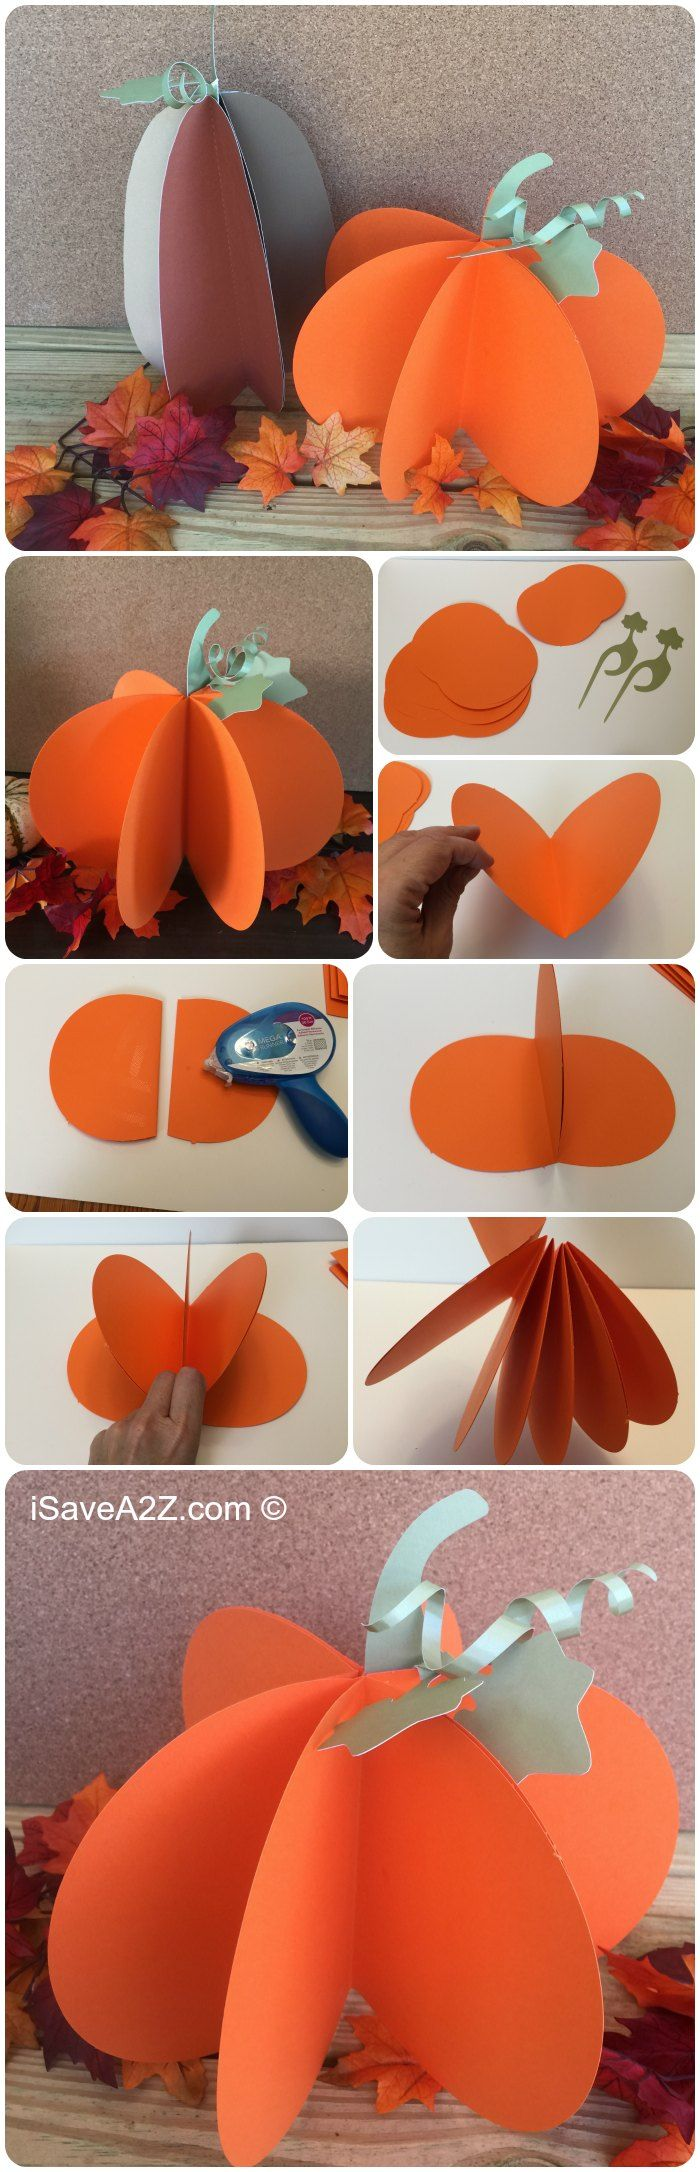 Thanksgiving Day Paper Craft Decoration Ideas That Dont Attract Pests Ad Decoratewithorkin